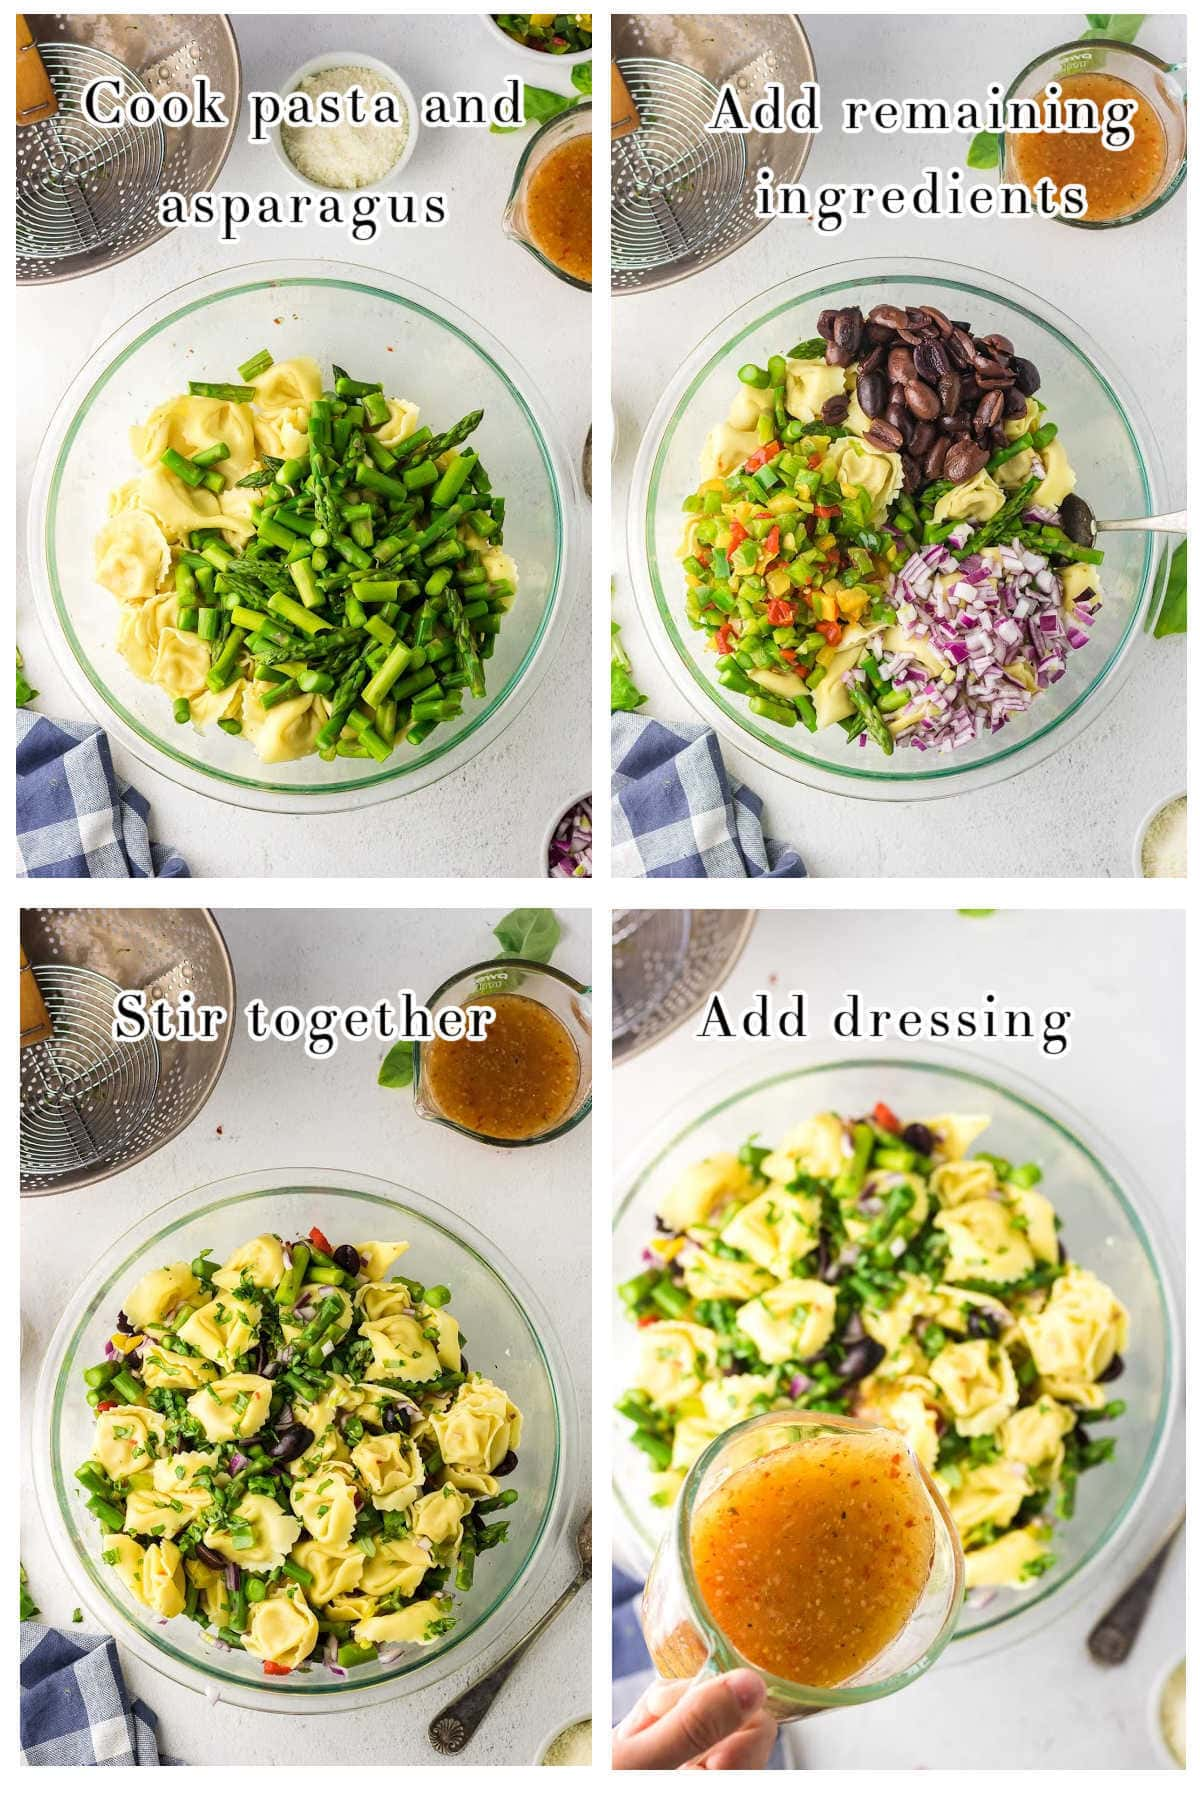 Collage of step by step images showing how to make this recipe.